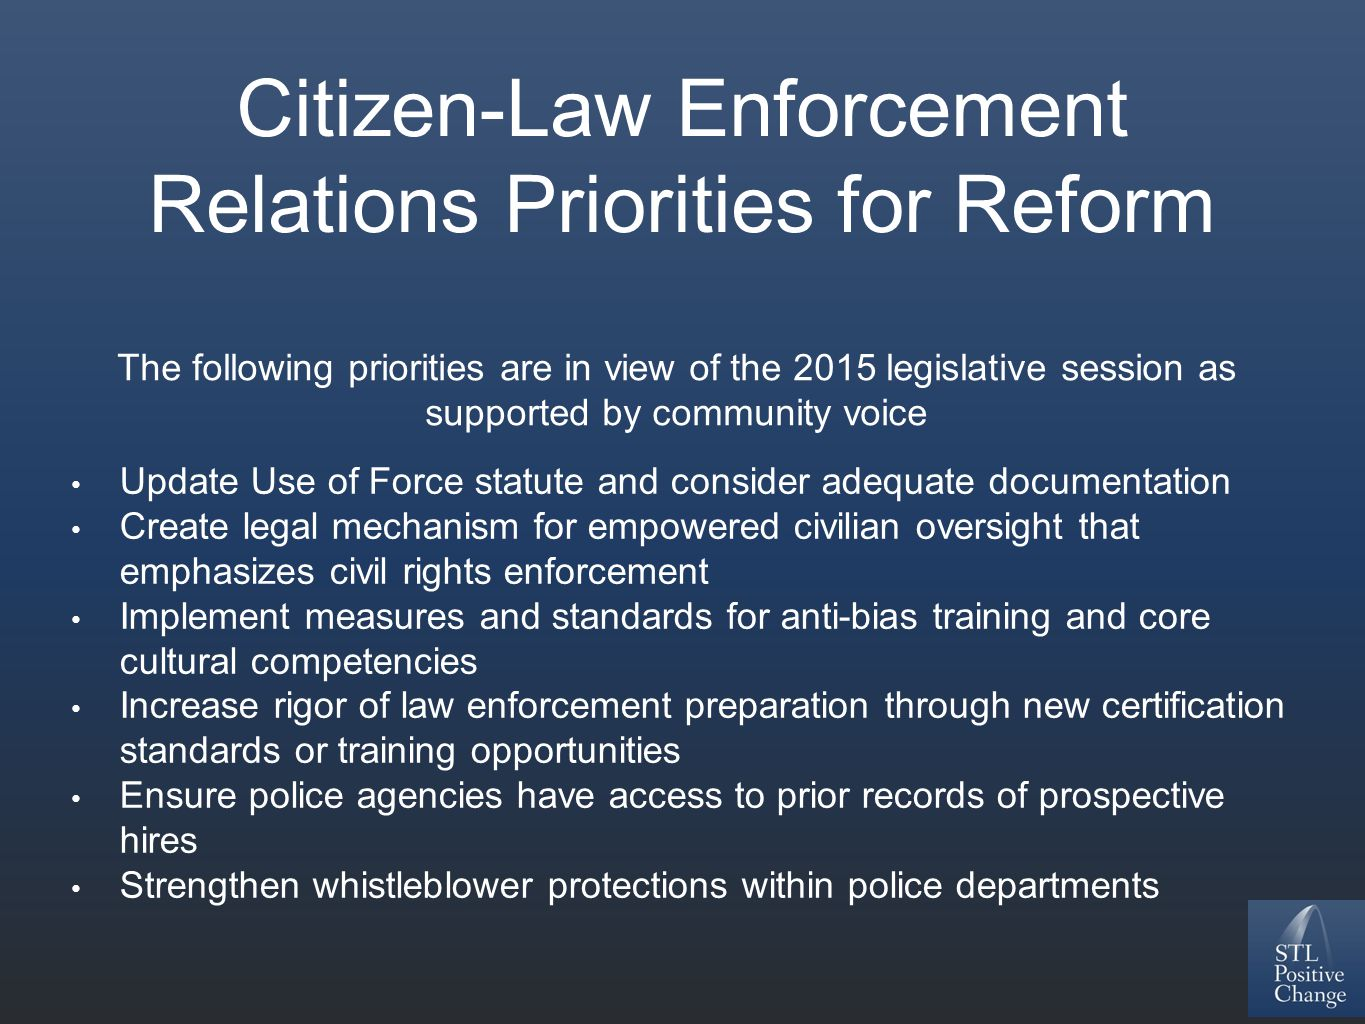 Citizen-Law Enforcement Relations Priorities for Reform The following priorities are in view of the 2015 legislative session as supported by community